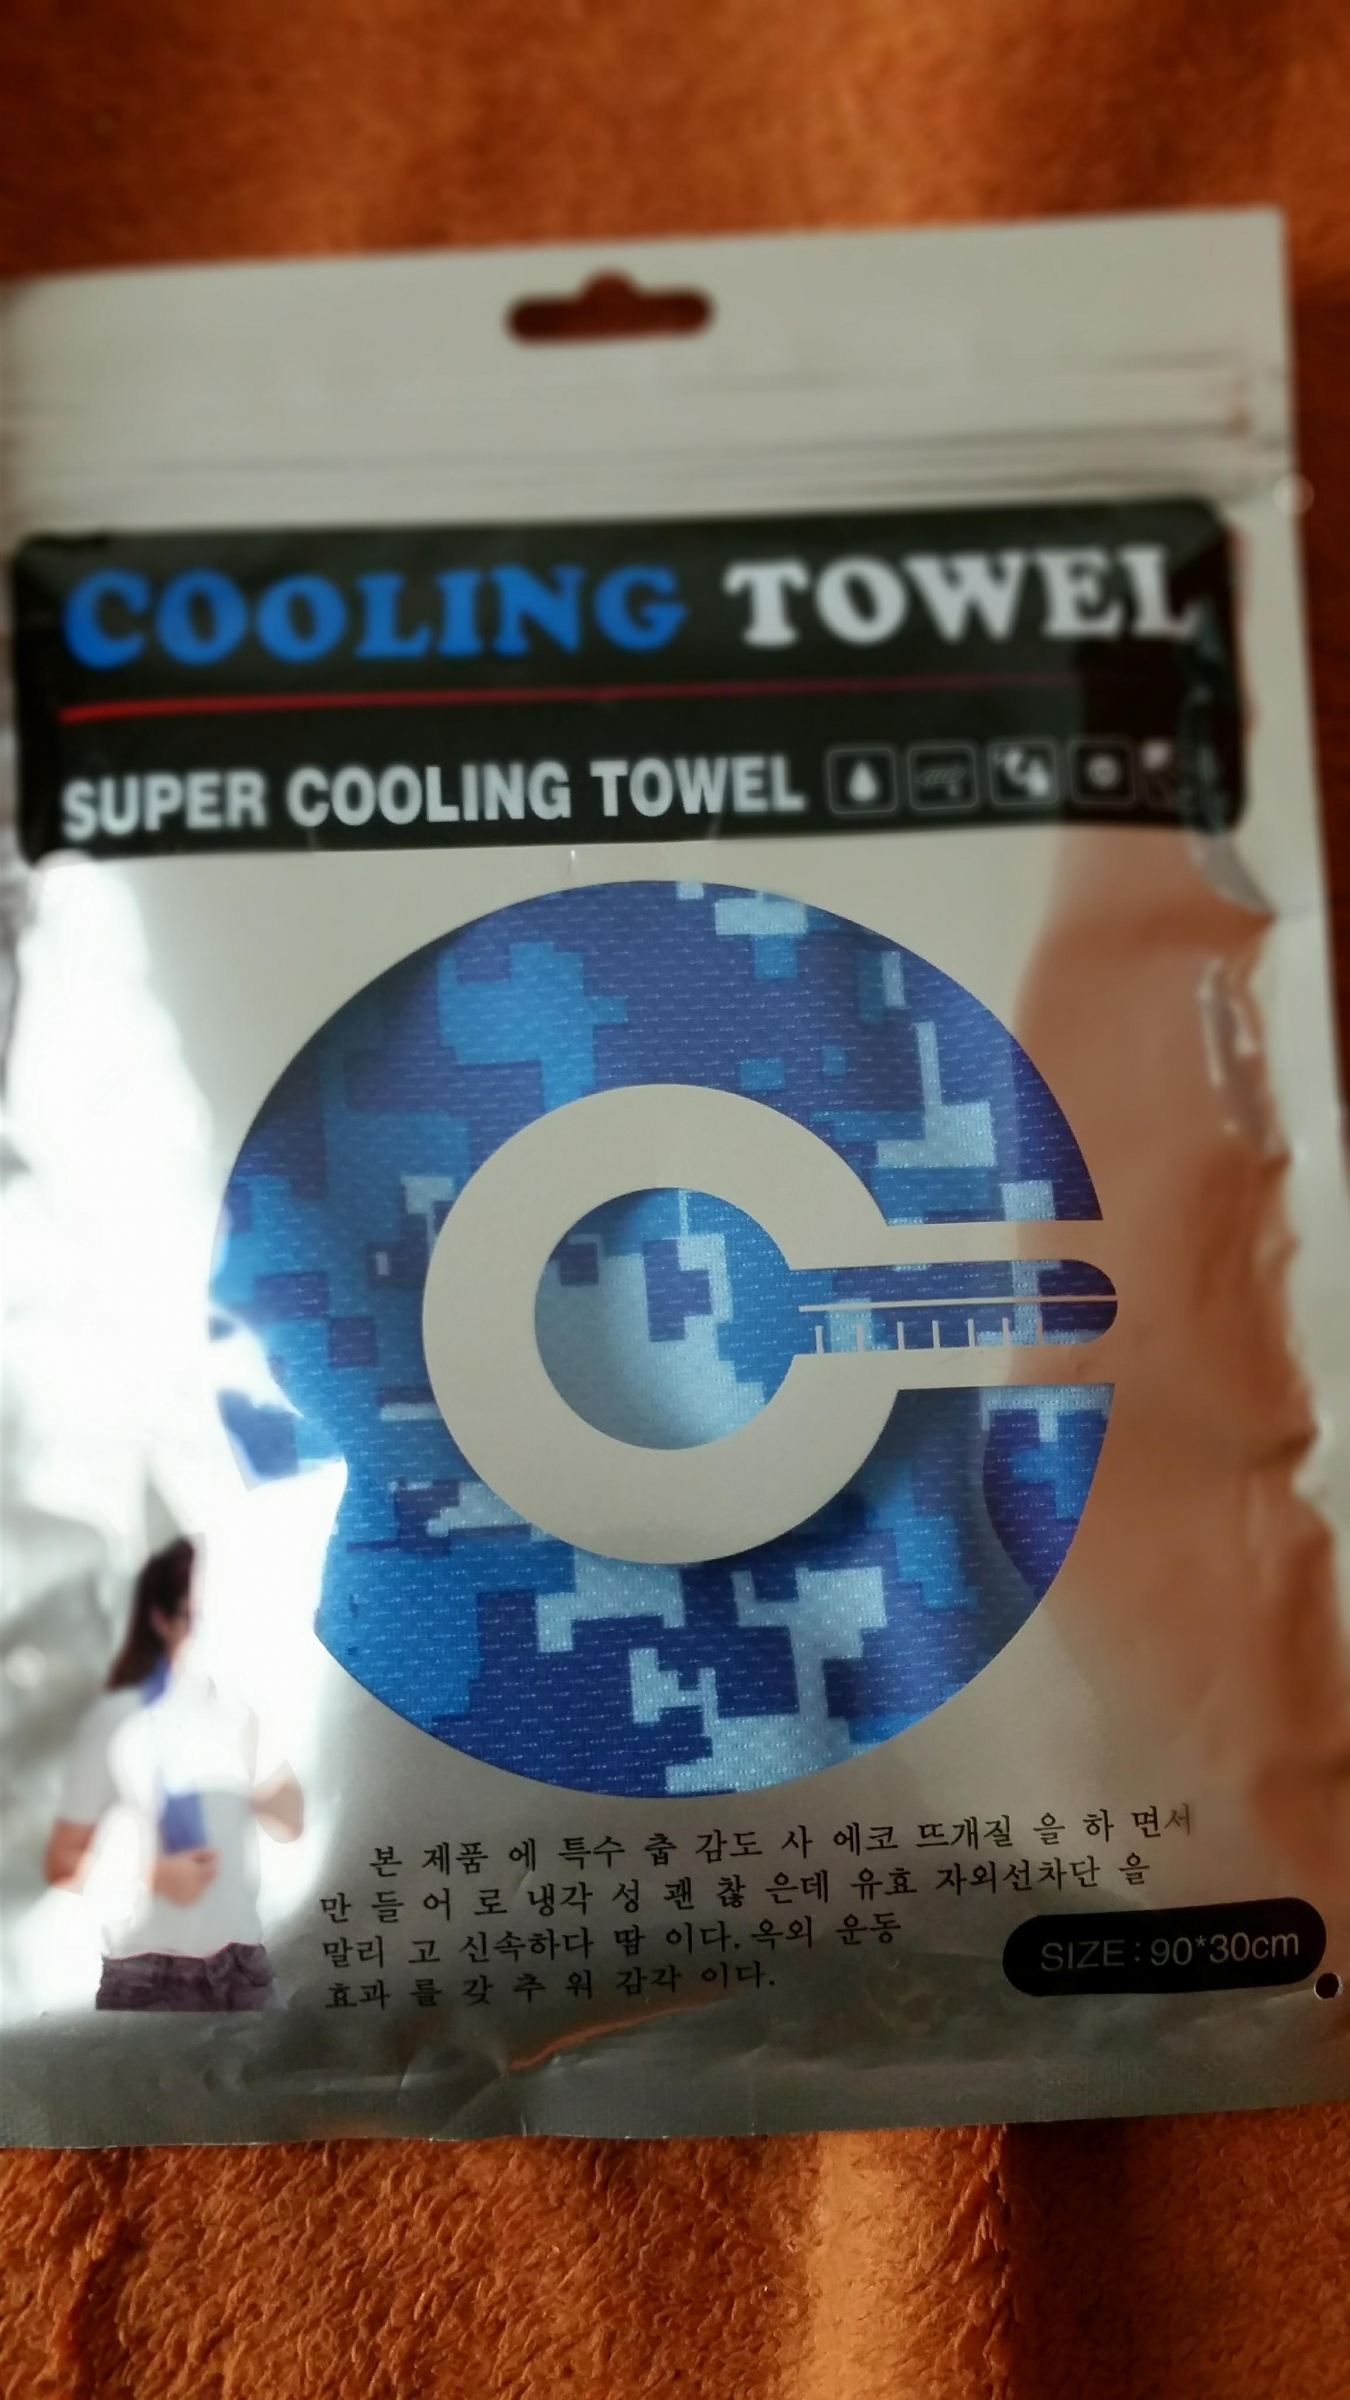 3 pack of camouflaged cooling towels provide cold relief where ever and whenever you need it, very soft & comfy to use, helps when you're overheated.